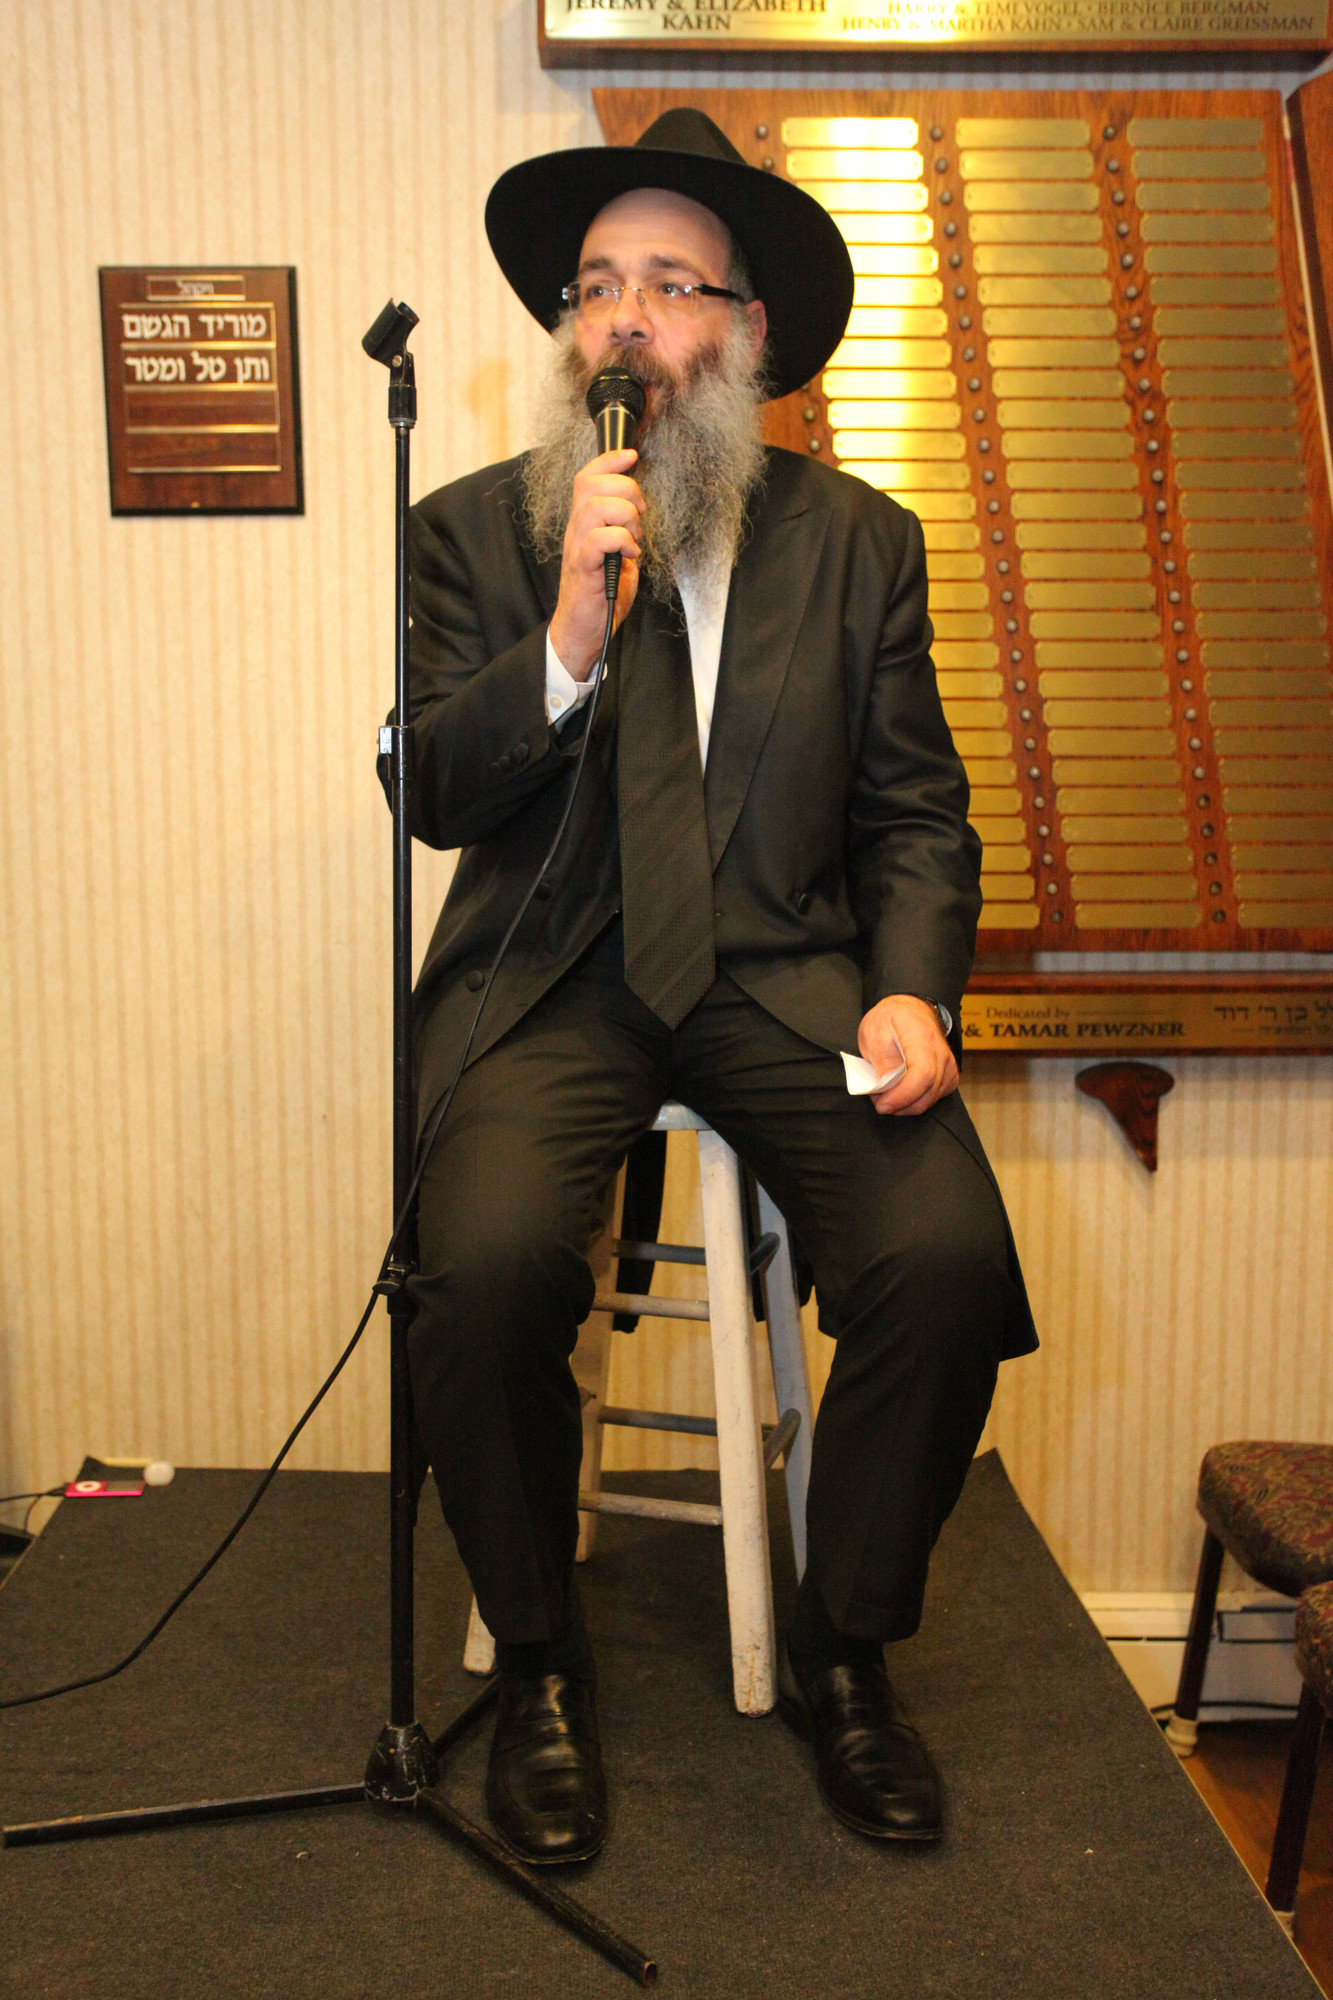 Rabbi Shneur Wolowik, Chbad's director, welcomed the audience and introduced comedian Randy Levin.